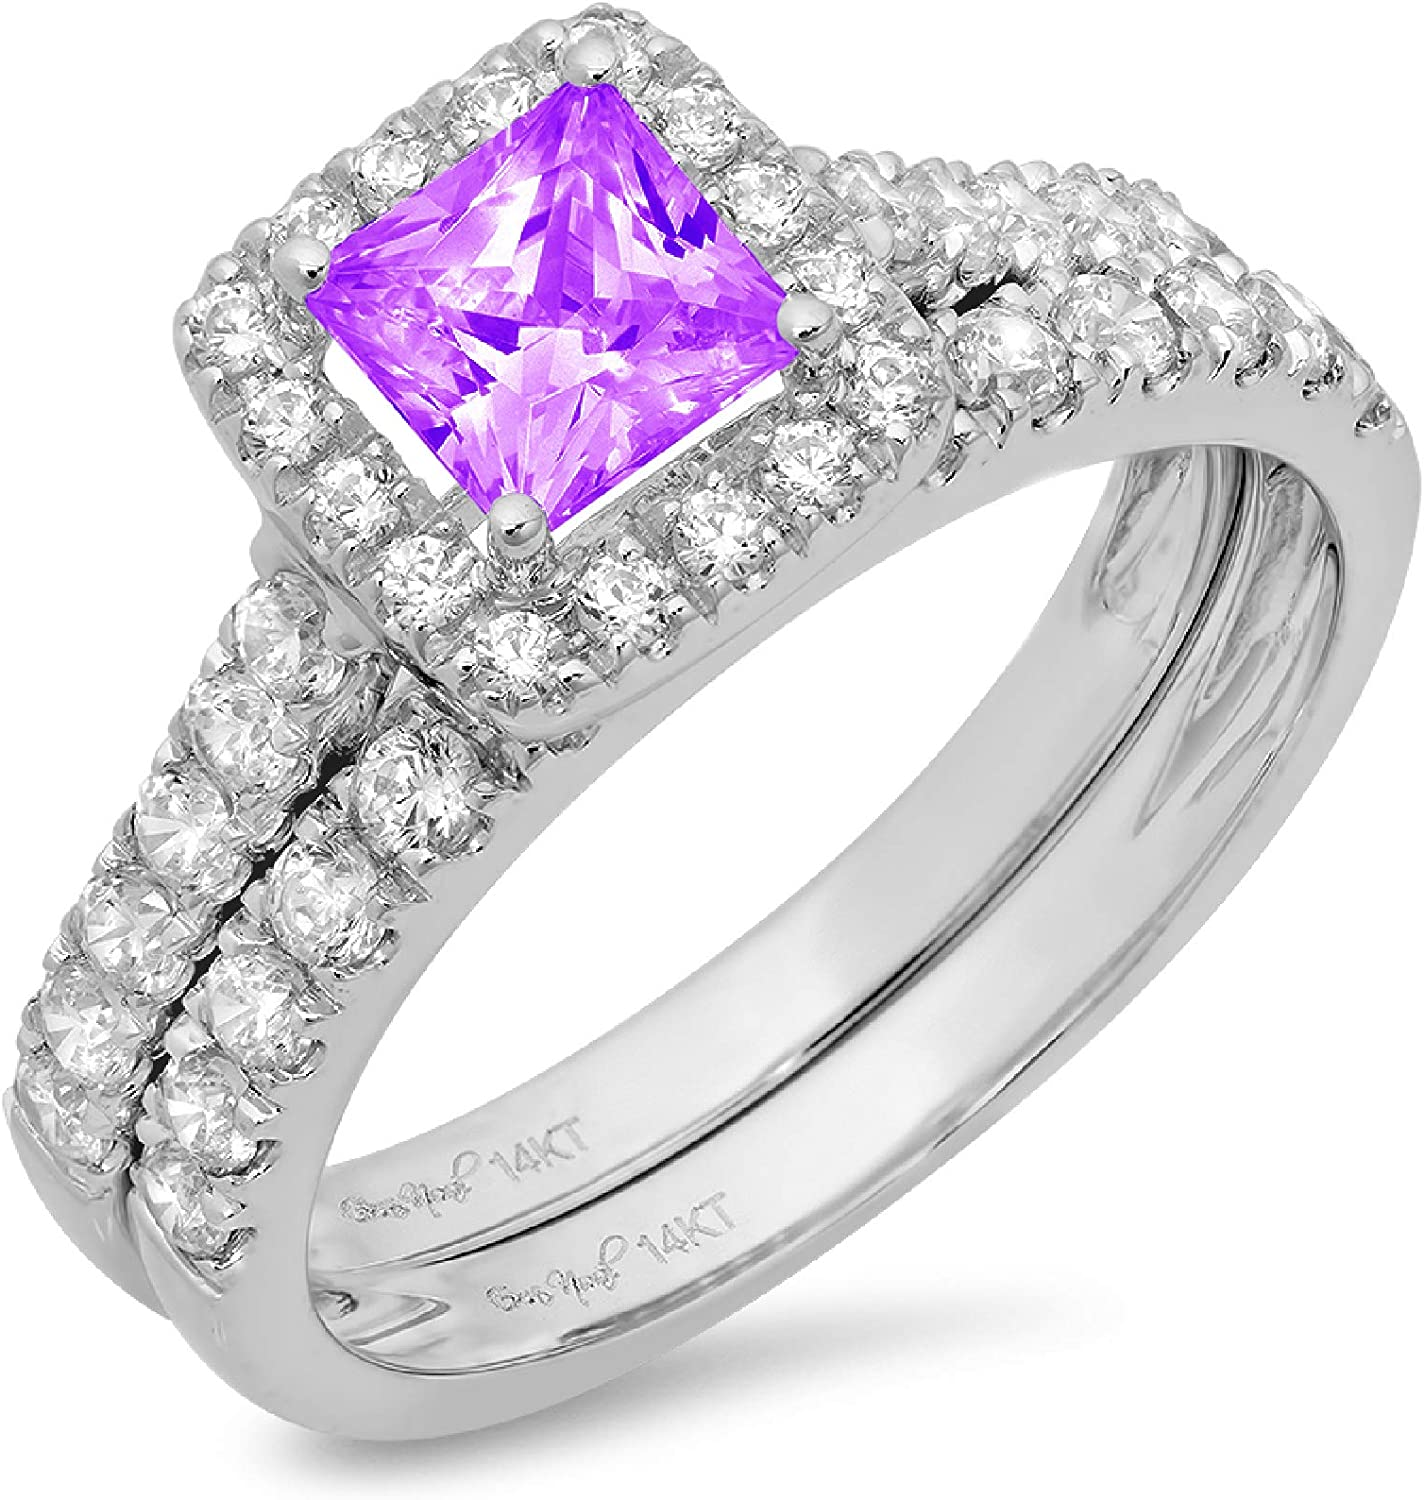 1.54ct Princess Cut Halo Pave Solitaire with Accent VVS1 Ideal Natural Purple Amethyst Engagement Promise Designer Anniversary Wedding Bridal Ring band set 14k White Gold